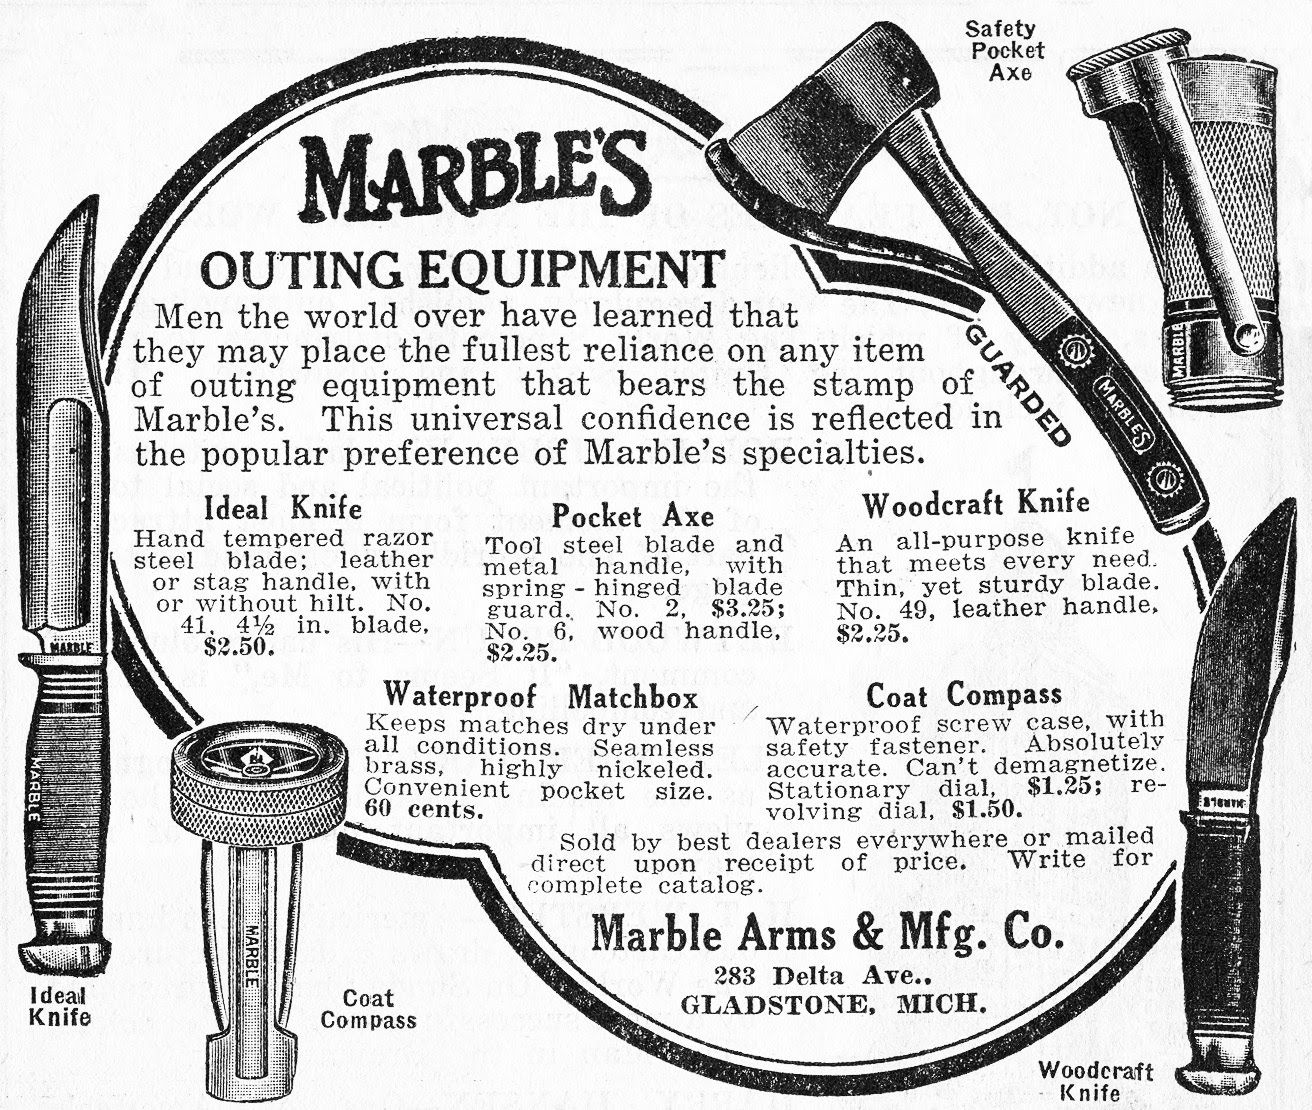 Vintage Marbles Outing Equipment Ad